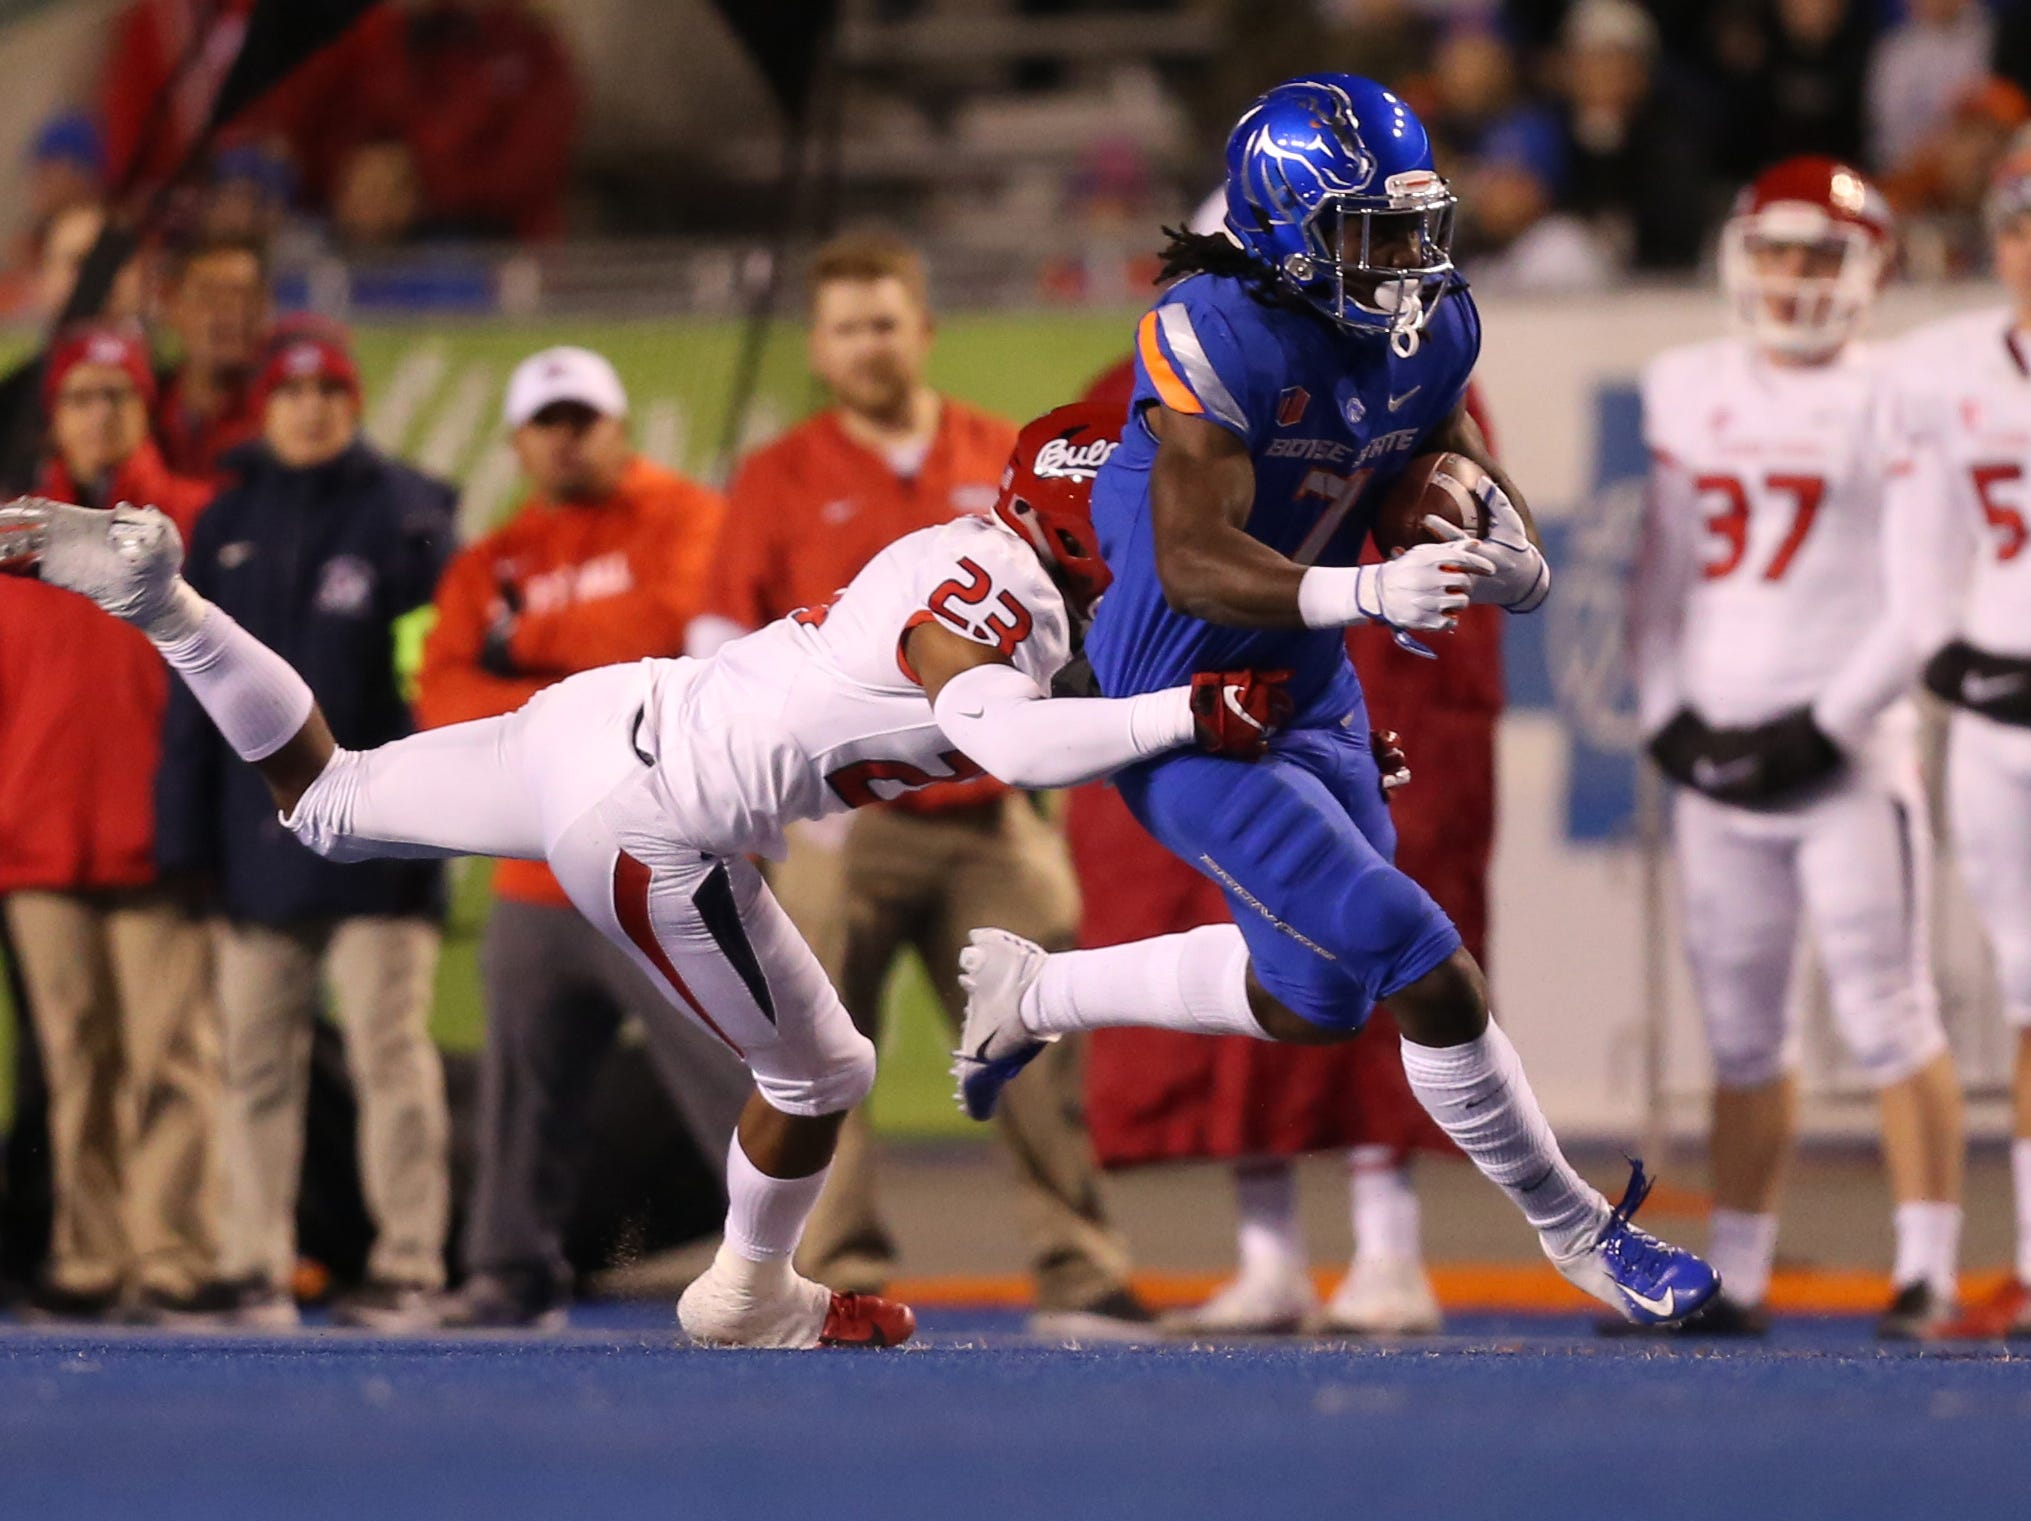 Boise State Broncos wide receiver A.J. Richardson (7) carries the ball as Fresno State Bulldogs defensive back Juju Hughes (23) tackles during the first half at Albertsons Stadium.